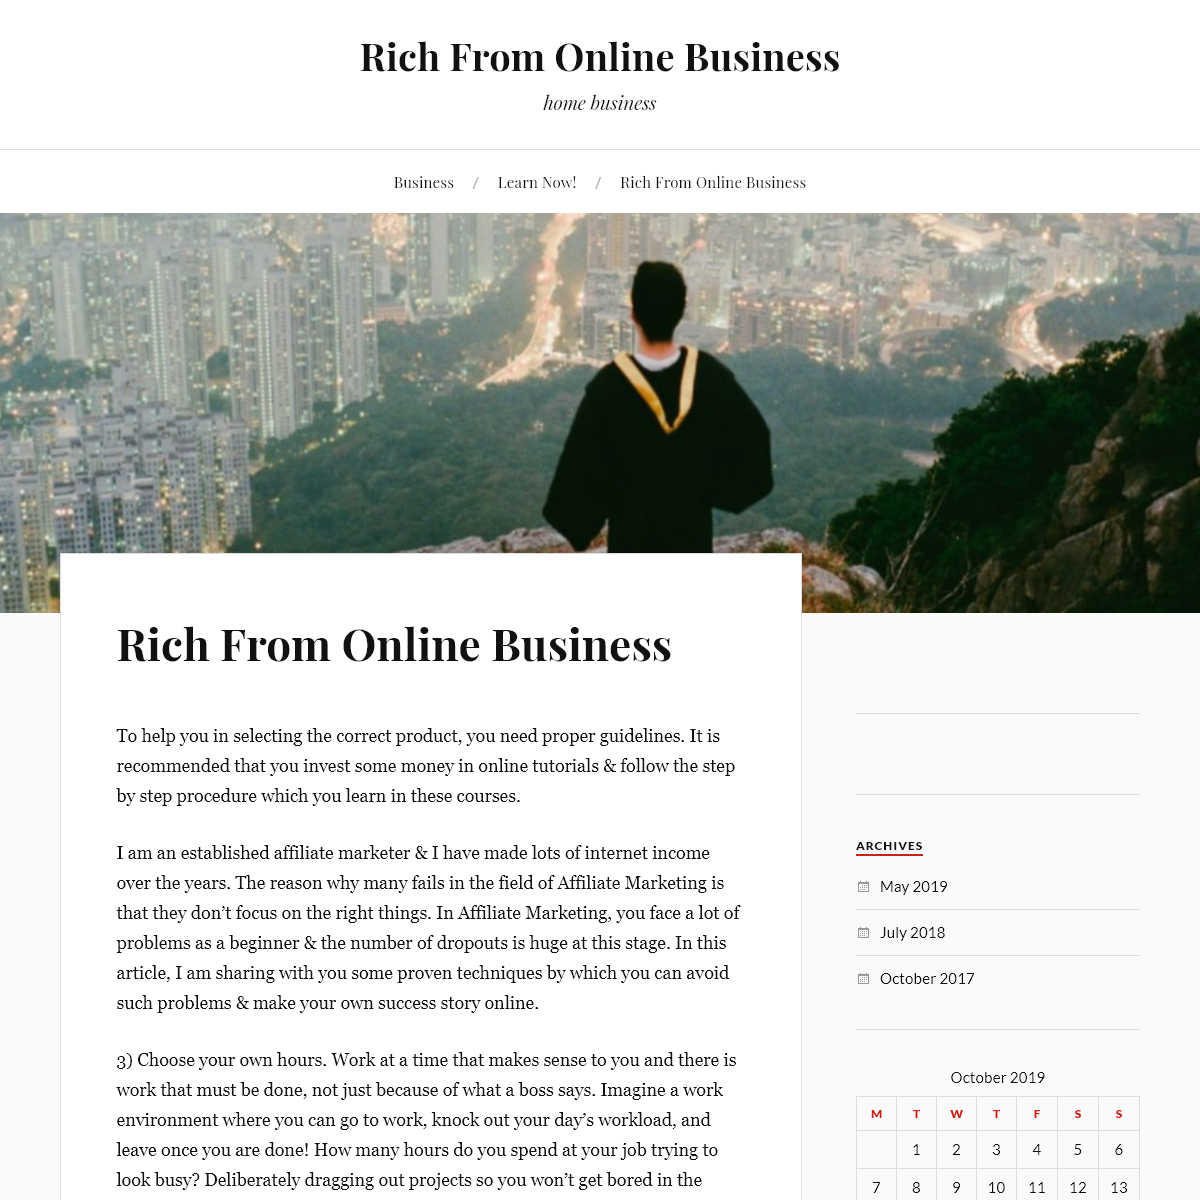 Rich From Online Business – home business